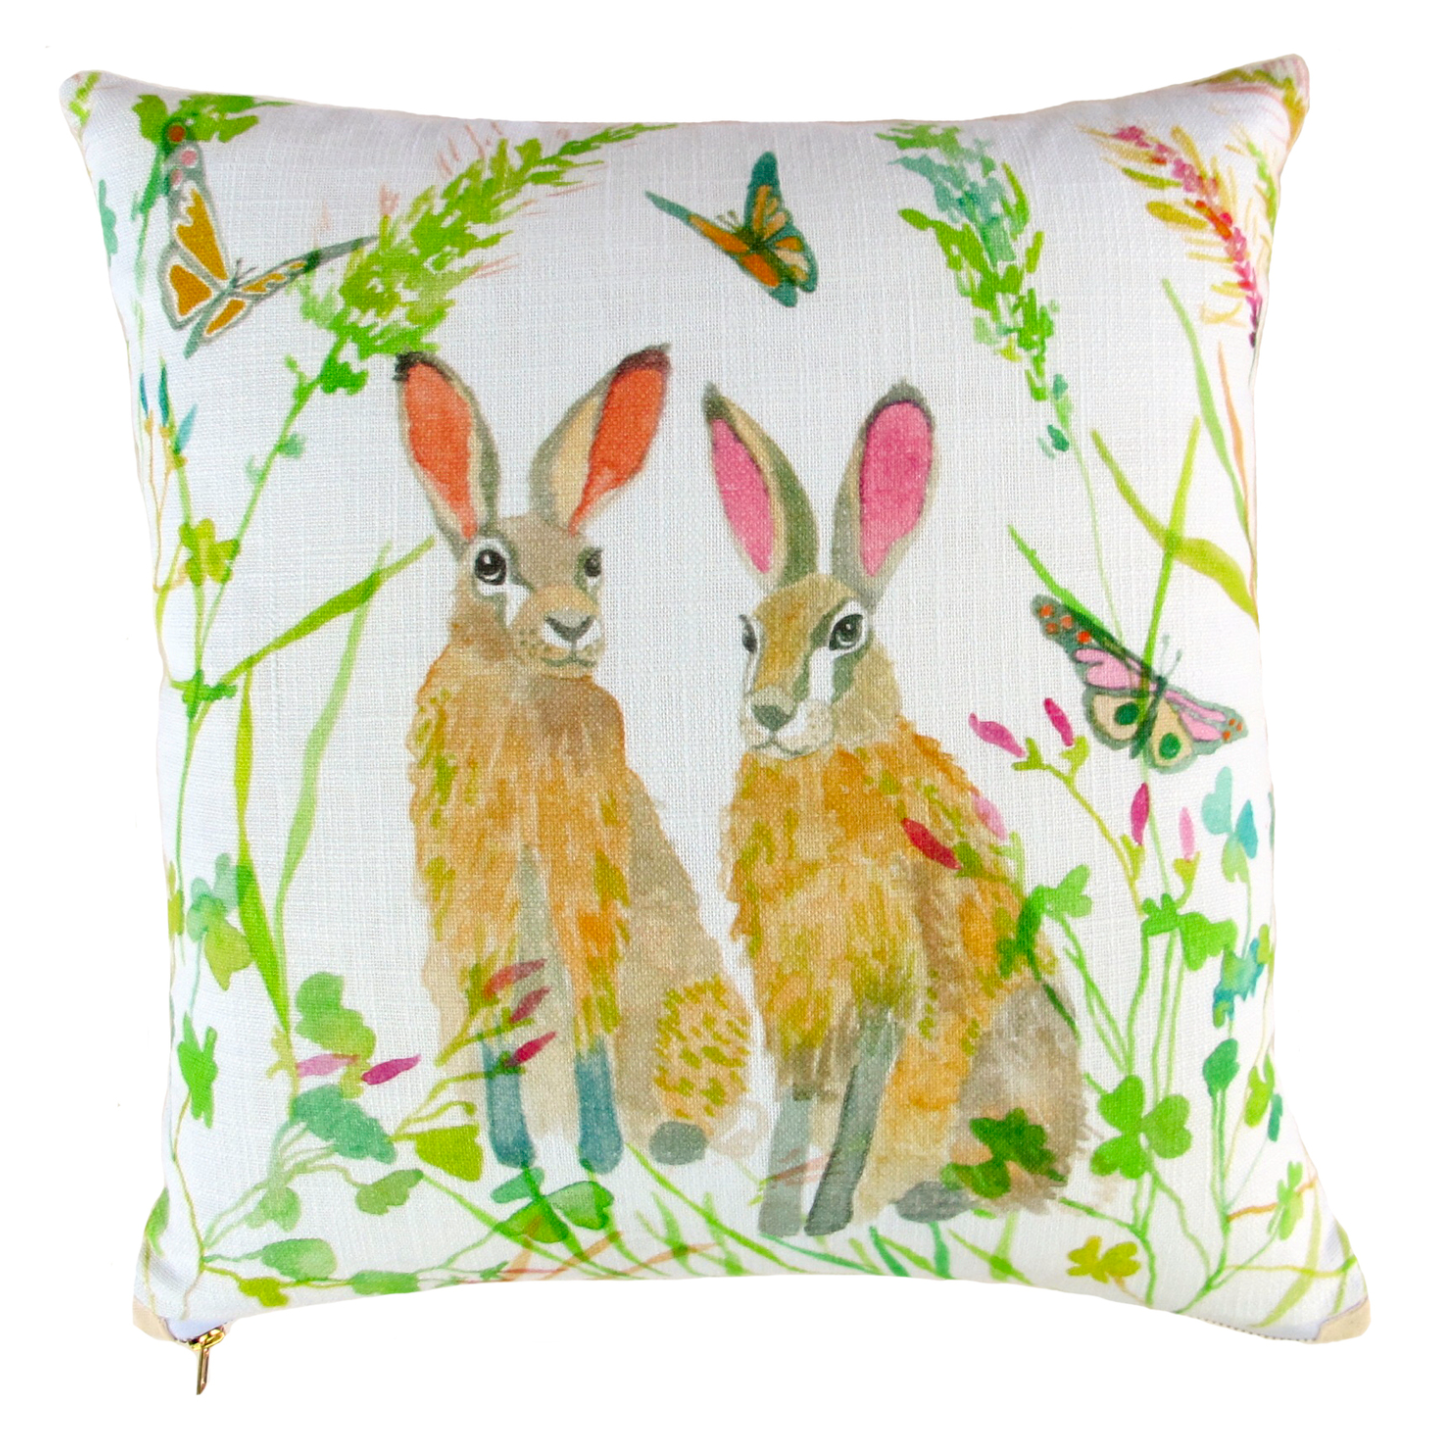 Hare Pillow by Betsy Olmsted